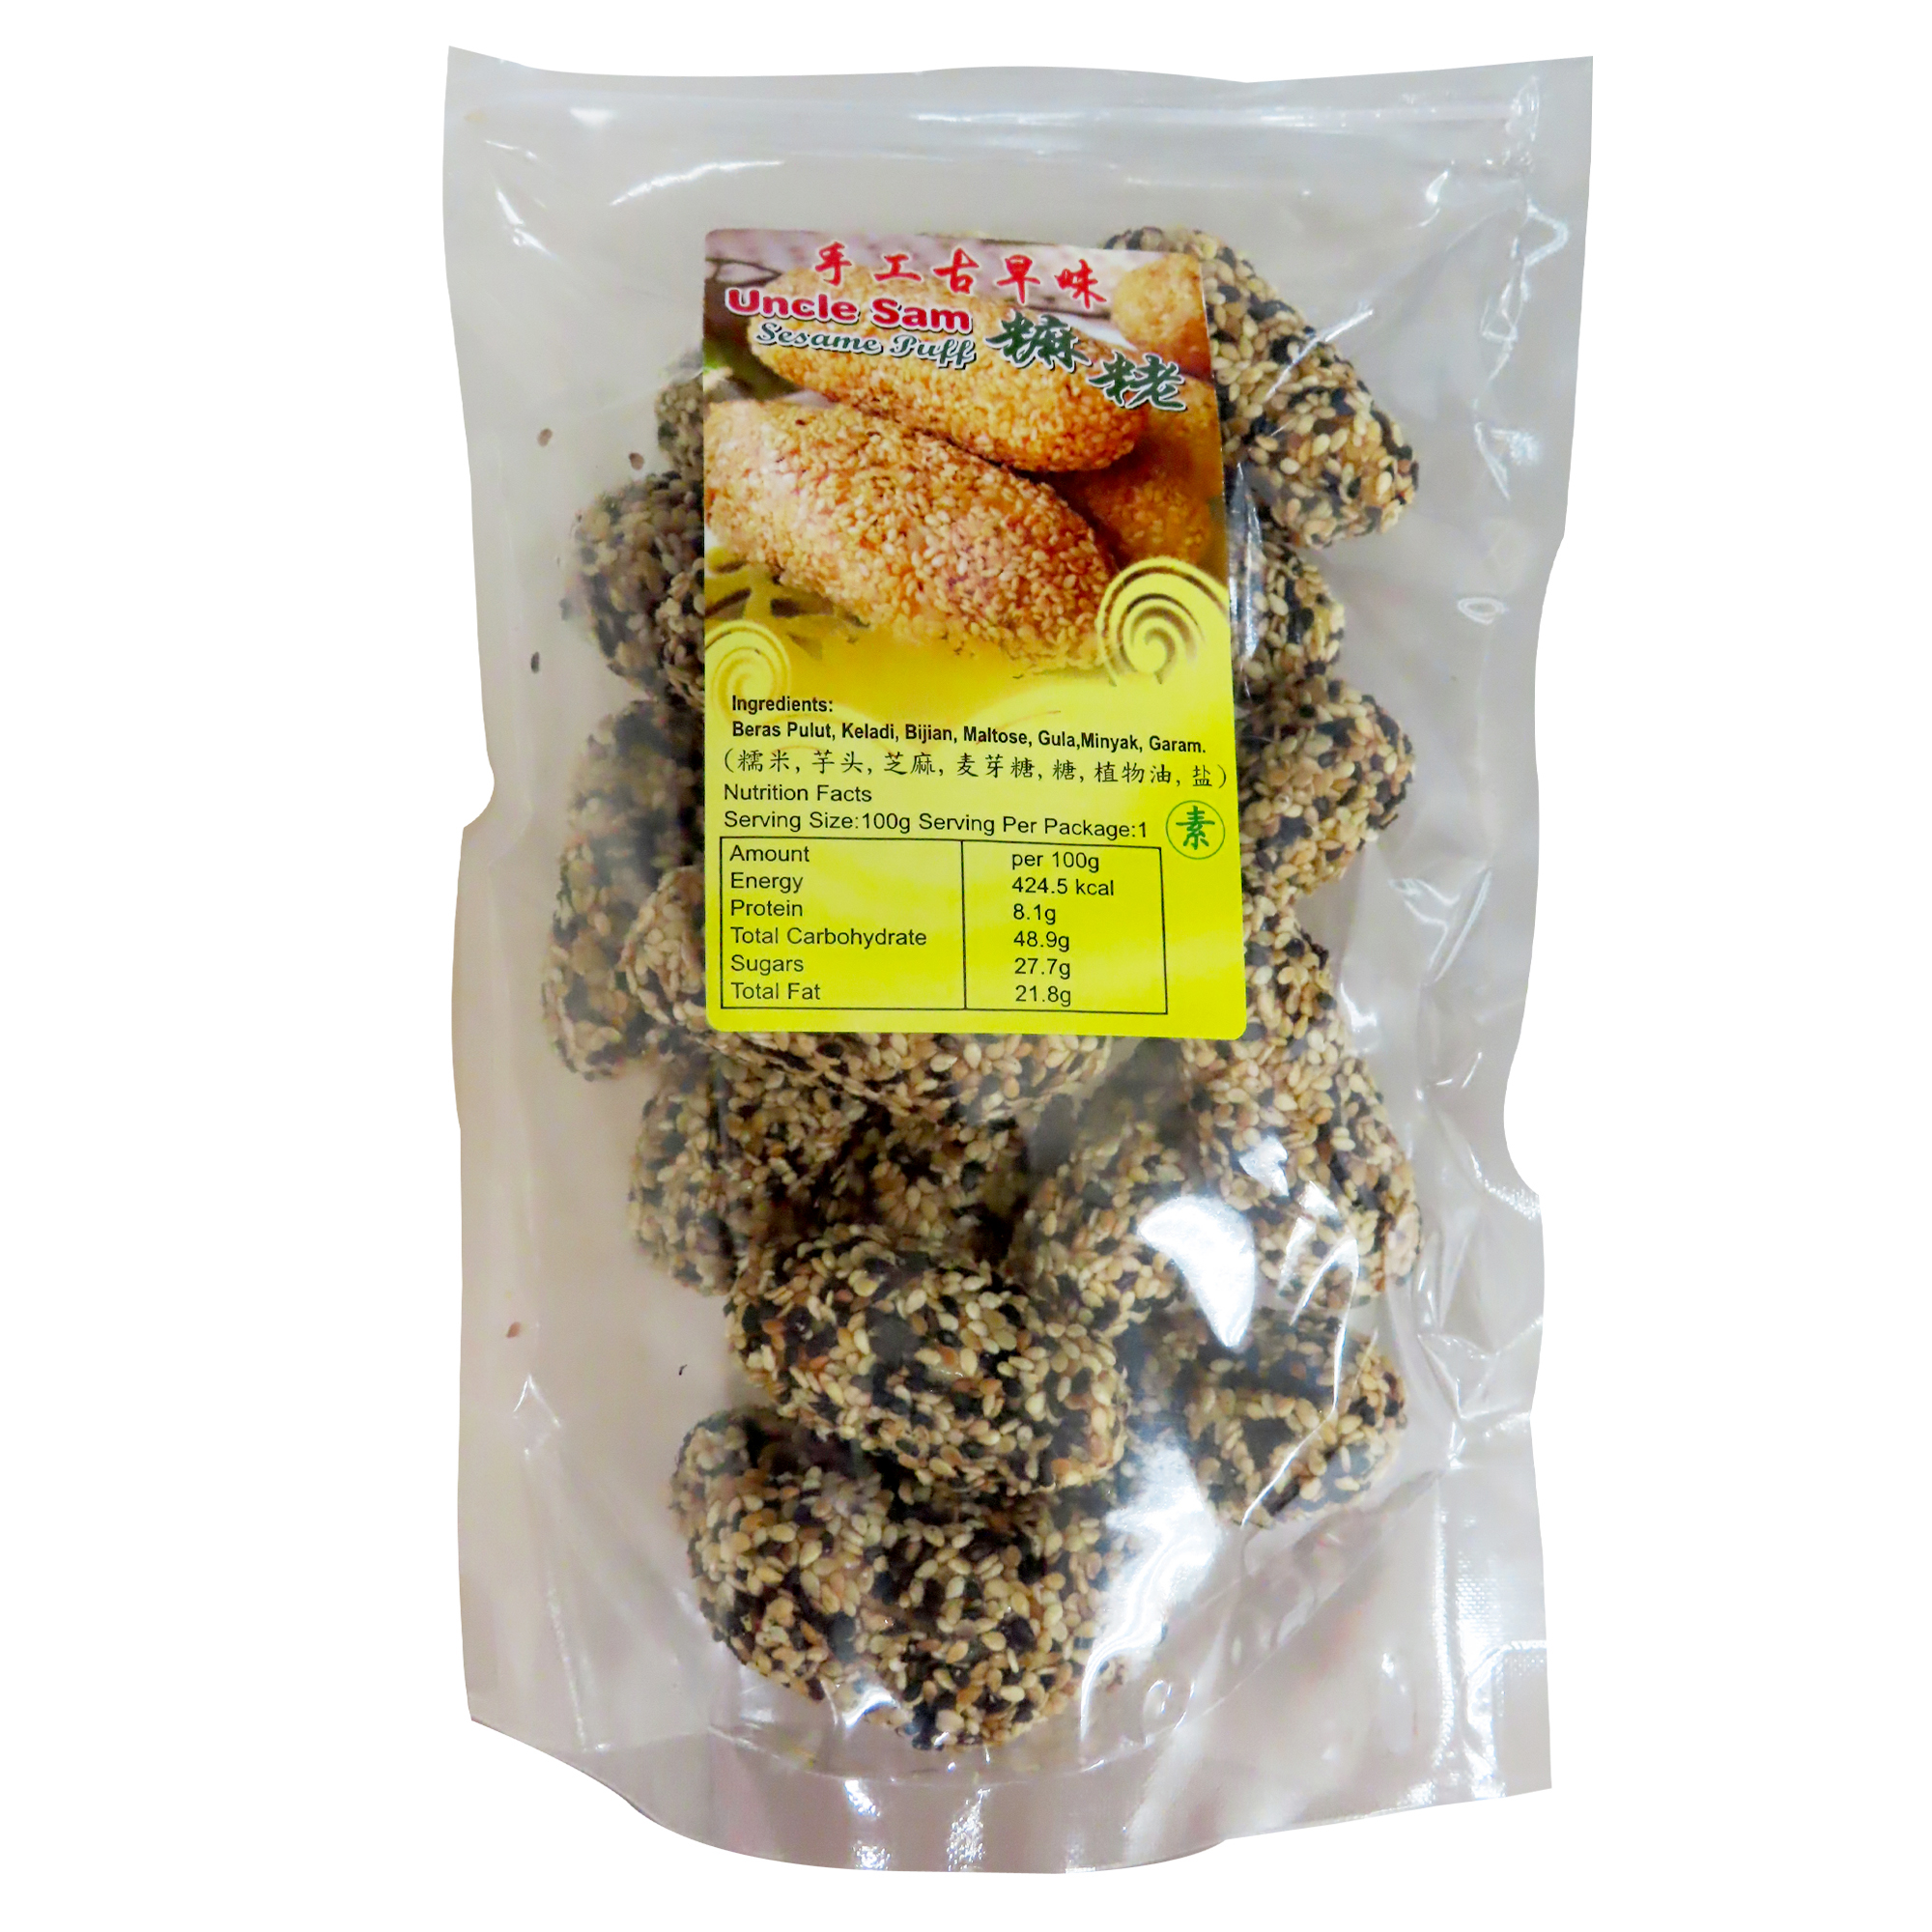 Image Black & White Seasame Puff 手工黑白芝麻麻栳 150grams